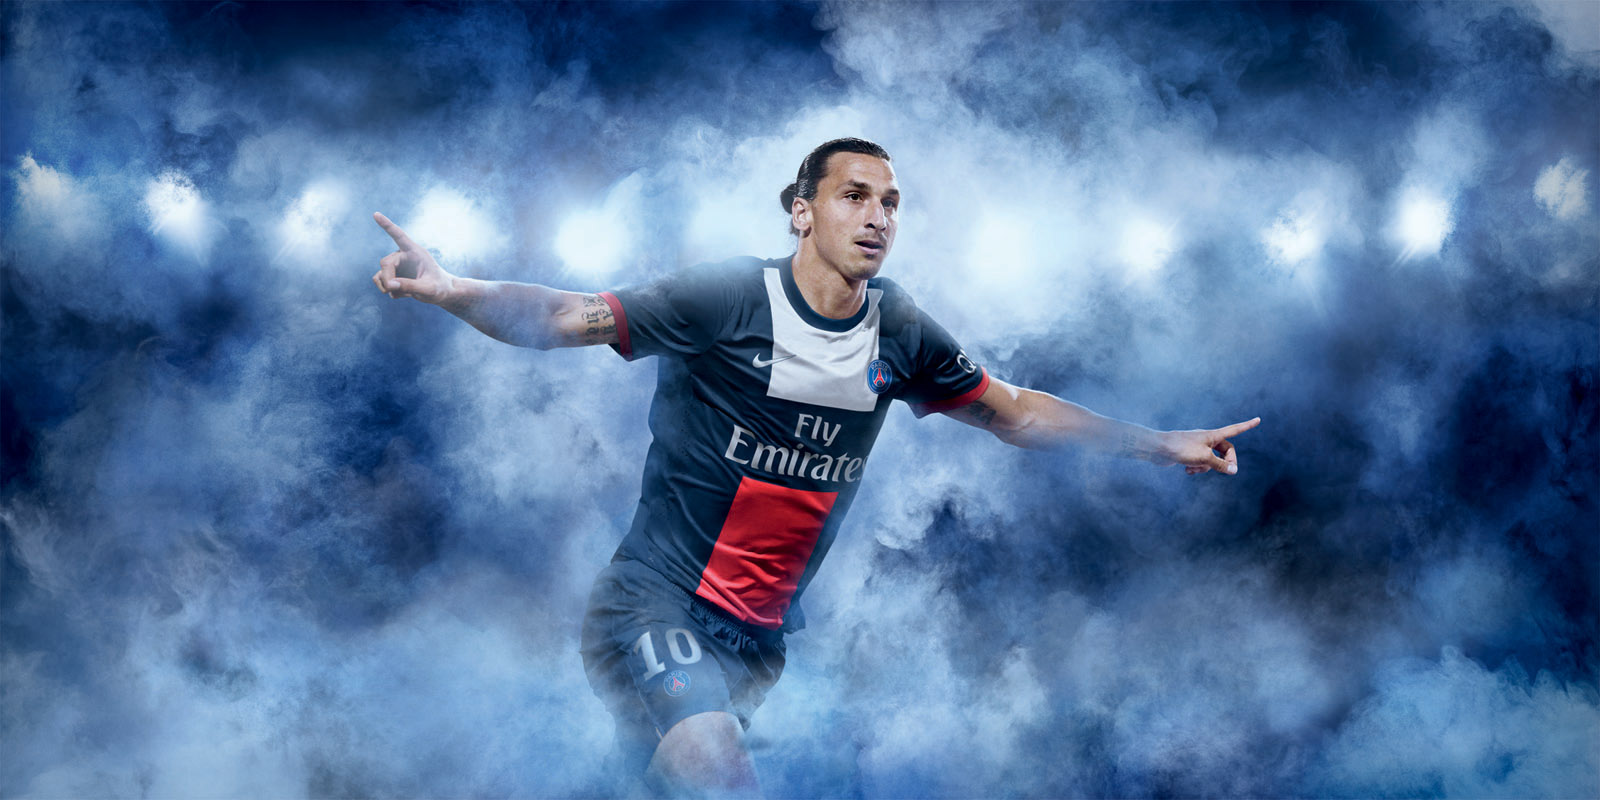 Paris Saint Germain thuisshirt 2013/2014